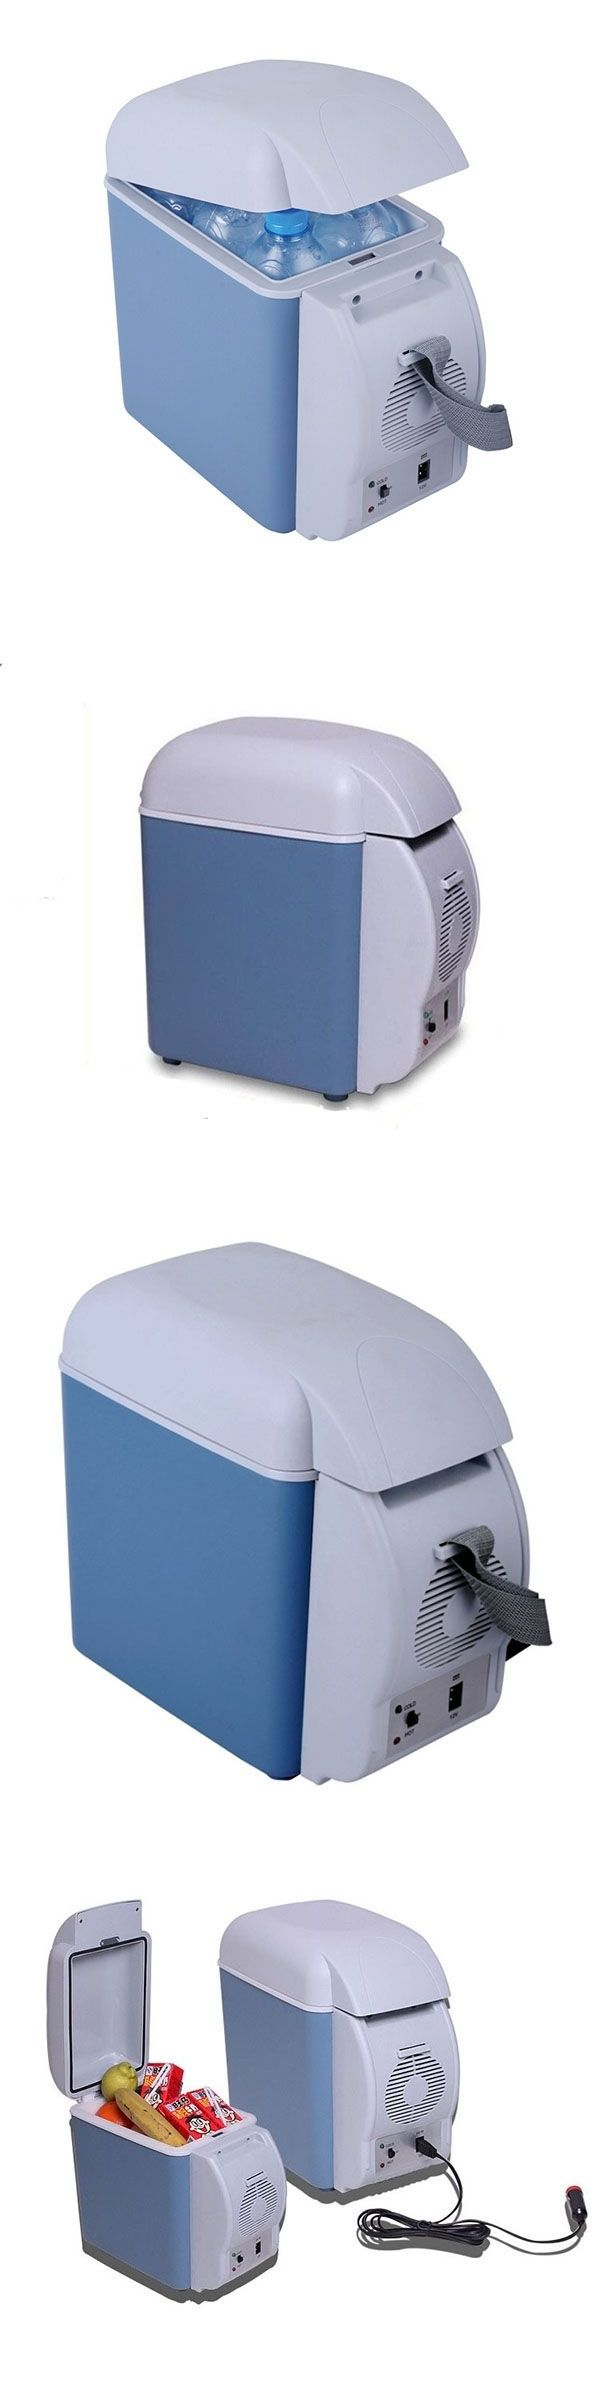 12-Volt Portable Appliances: 12V 7.5L Large Capacity Portable Car Refrigerator Cooler Warmer Dual Purpose BUY IT NOW ONLY: $33.99